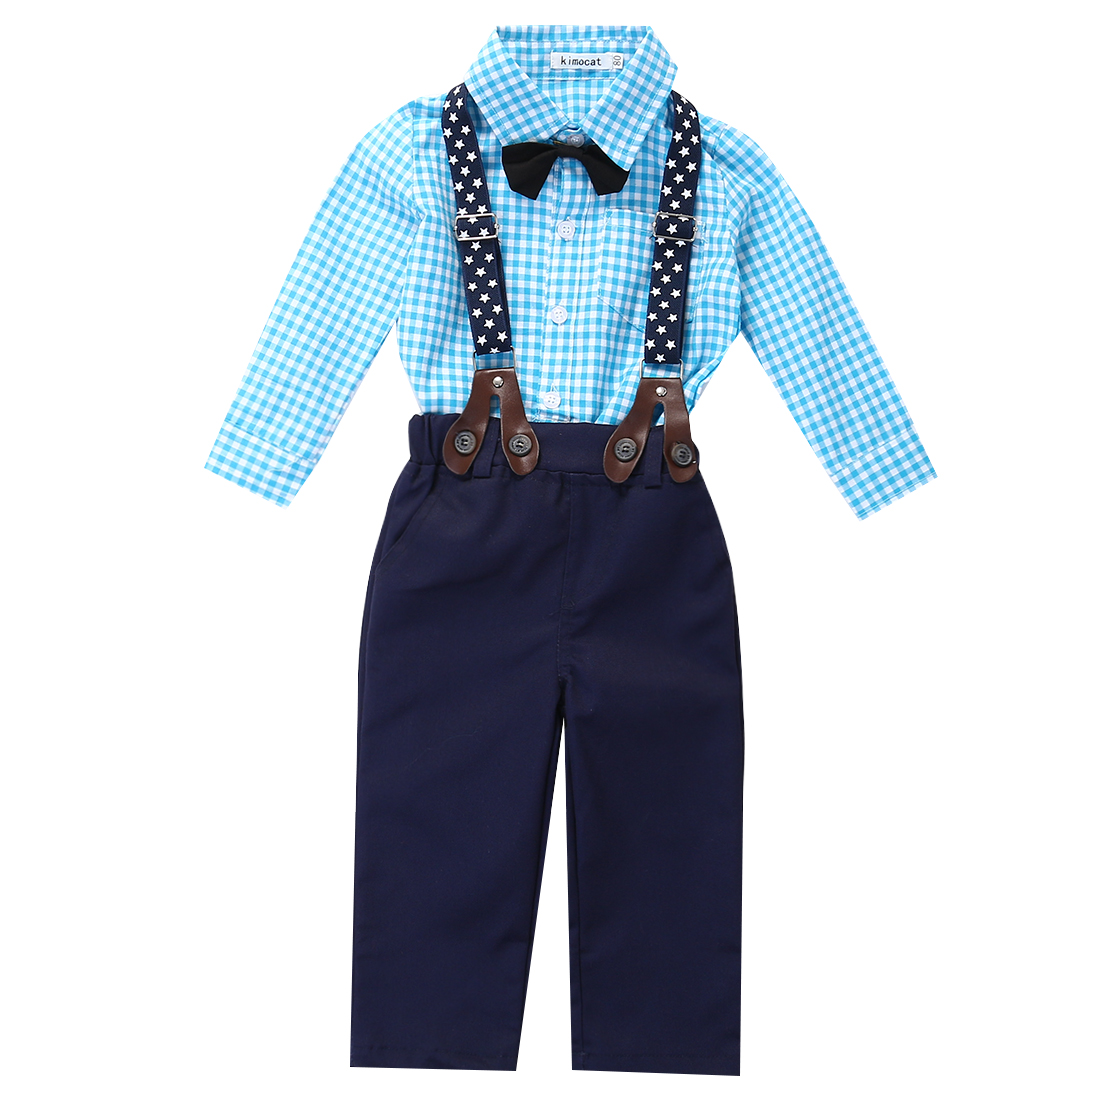 b197c7a8e 2pcs Newborn Baby Boy Clothes Bow Tie Plaid Shirt+Suspender Pants Trousers  Overalls Outfits Kids Clothing Set 0 24M-in Clothing Sets from Mother &  Kids on ...